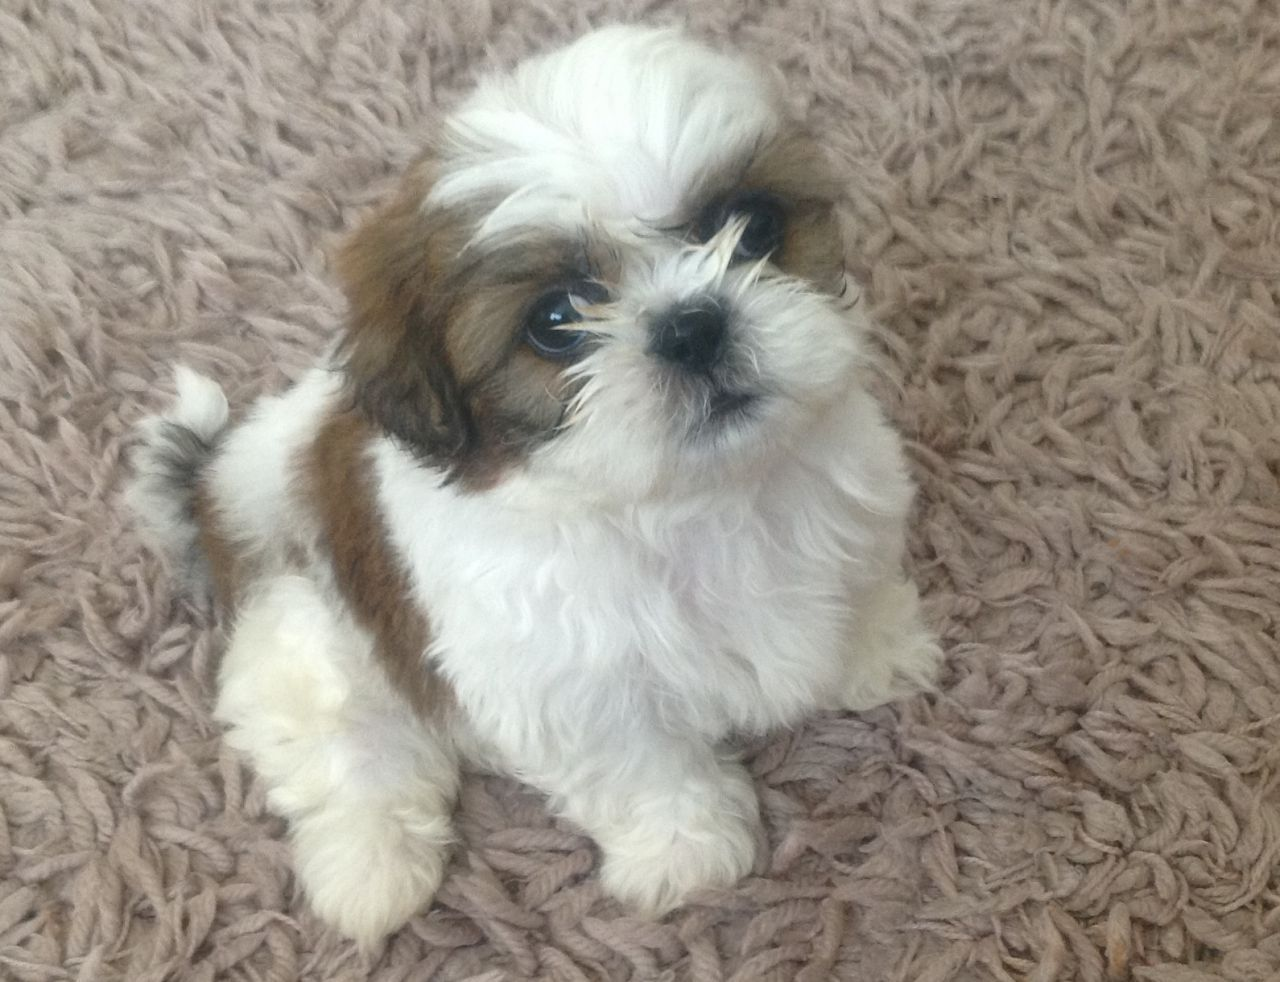 SHIH TZU PUPPIES (8 WEEKS OLD READY NOW) Shih tzu puppy